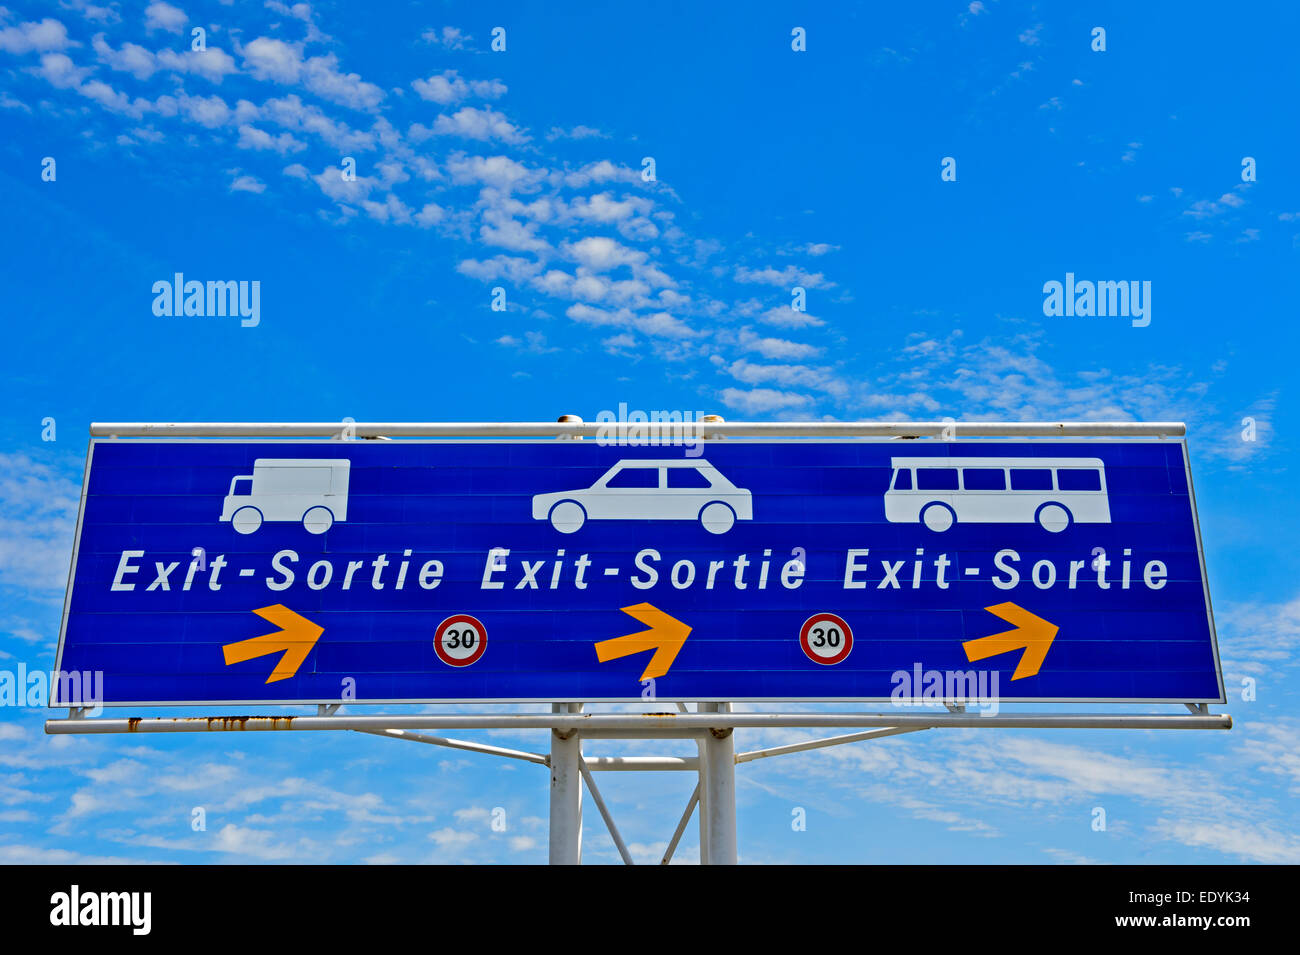 Sign for the exit for motor vehicles in the port area, Calais, France - Stock Image